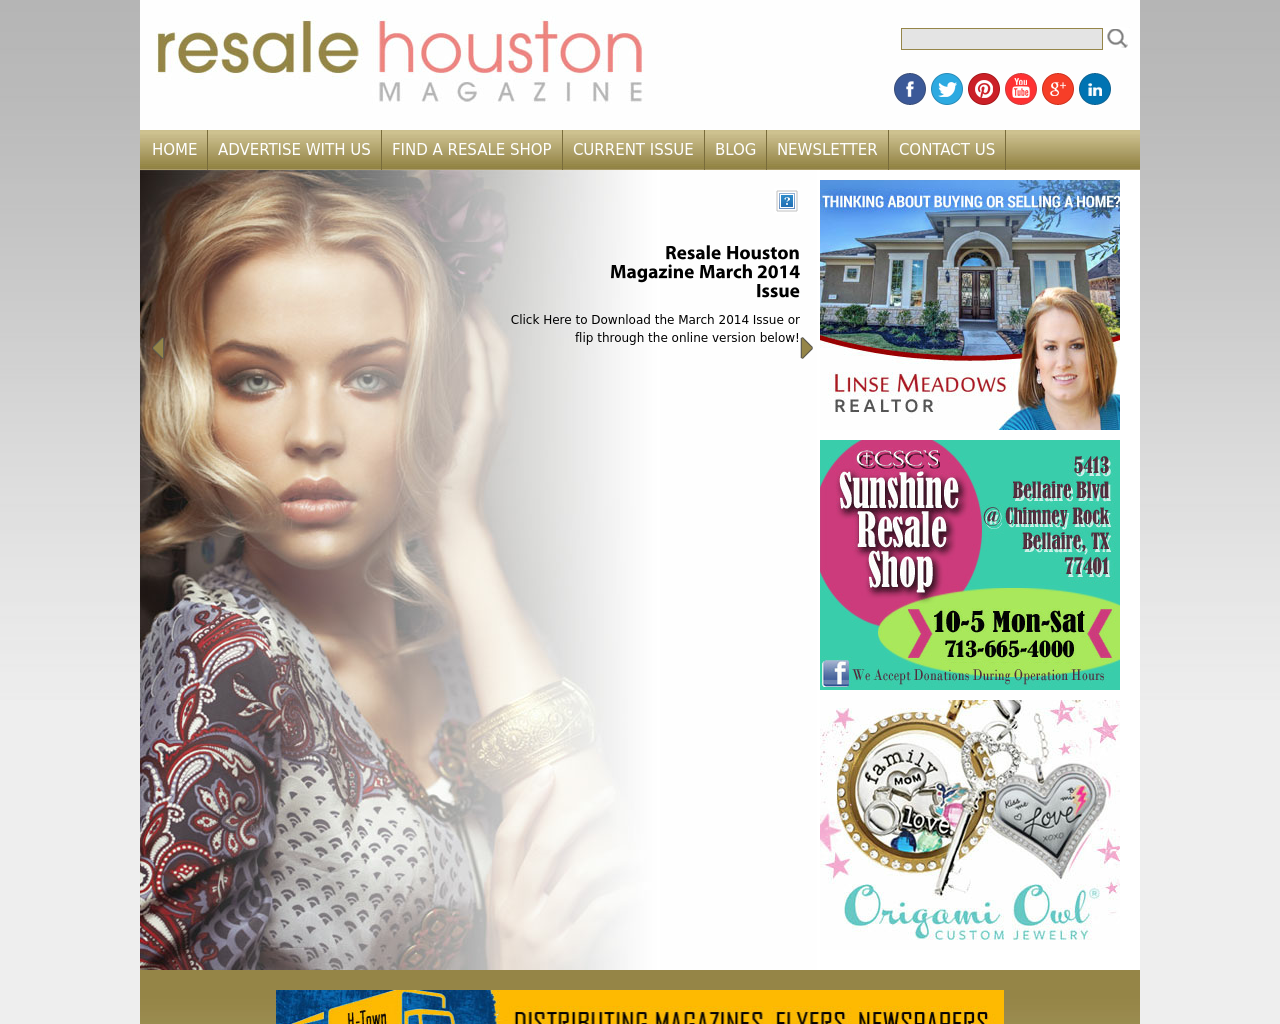 Resale-Houston-Advertising-Reviews-Pricing